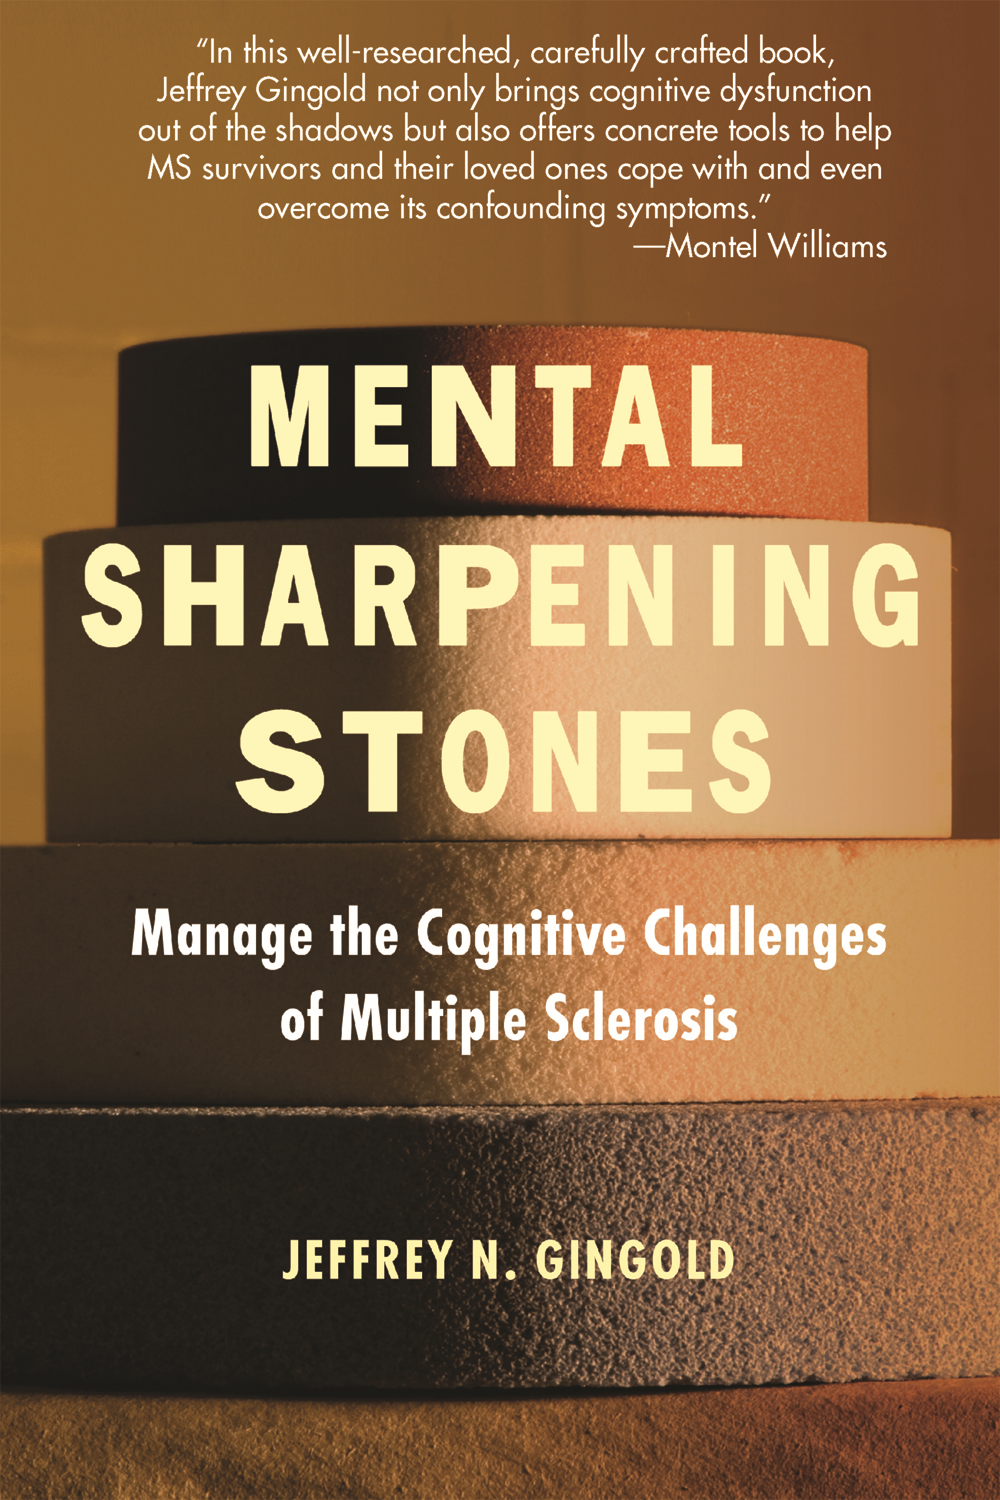 Mental Sharpening Stones